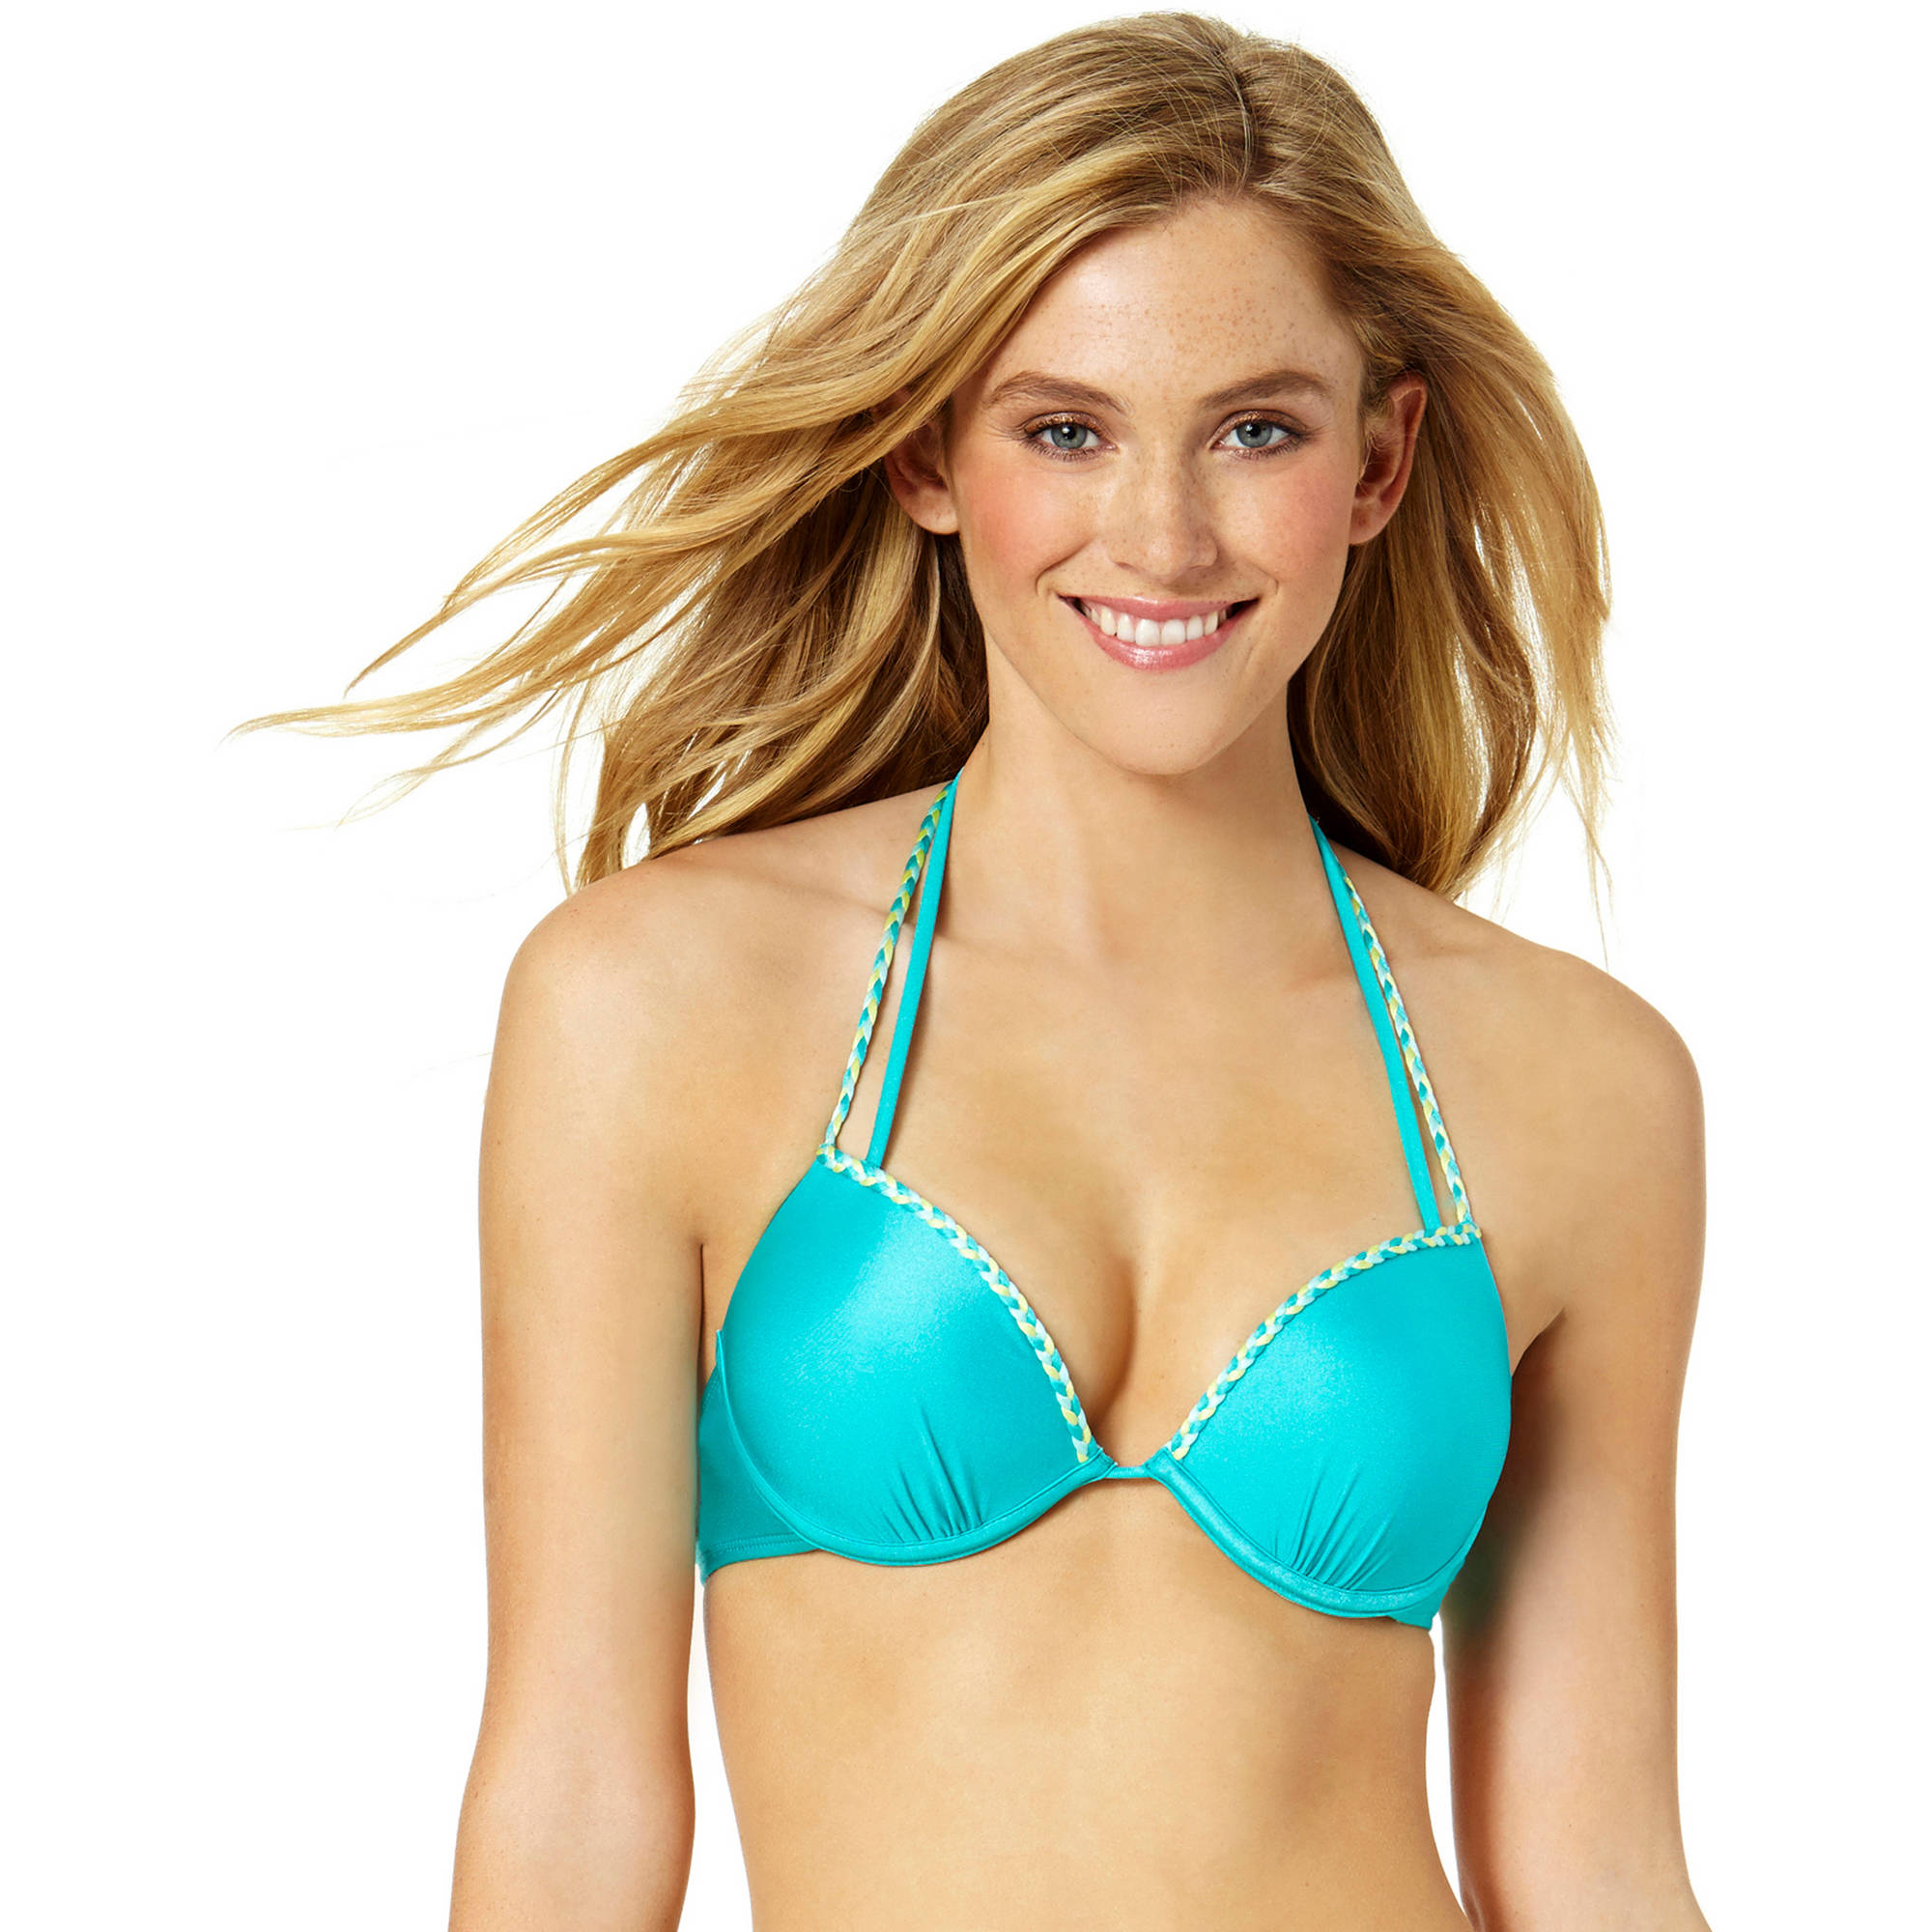 Tahiti Women's Braided Strap Underwire Push Up Halter Top